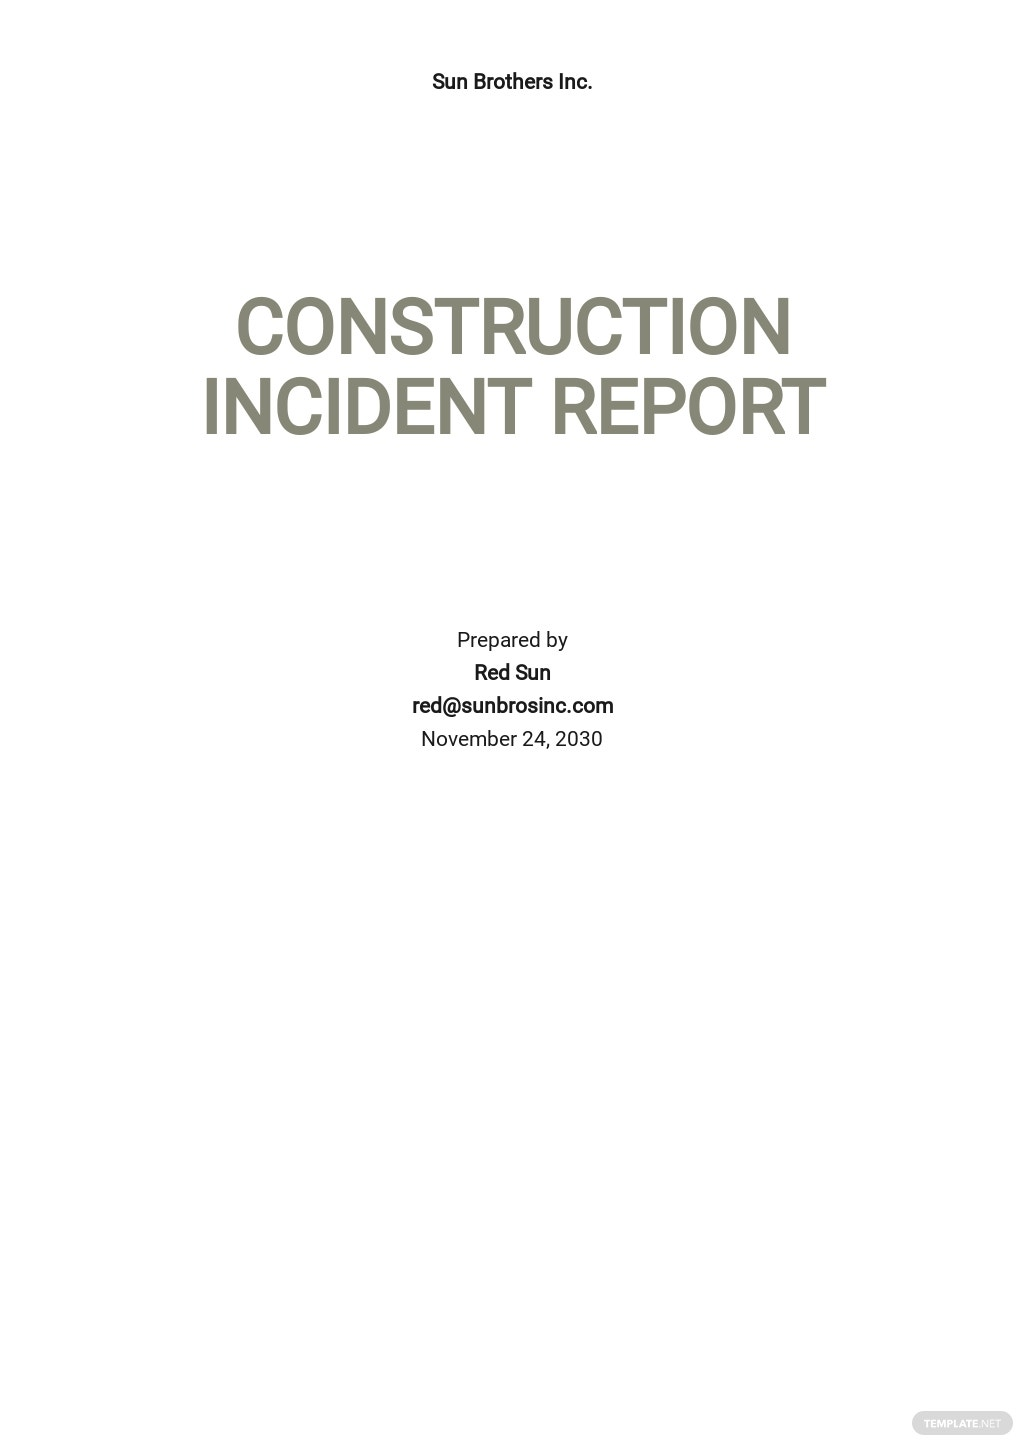 Blank Construction Incident Report Template